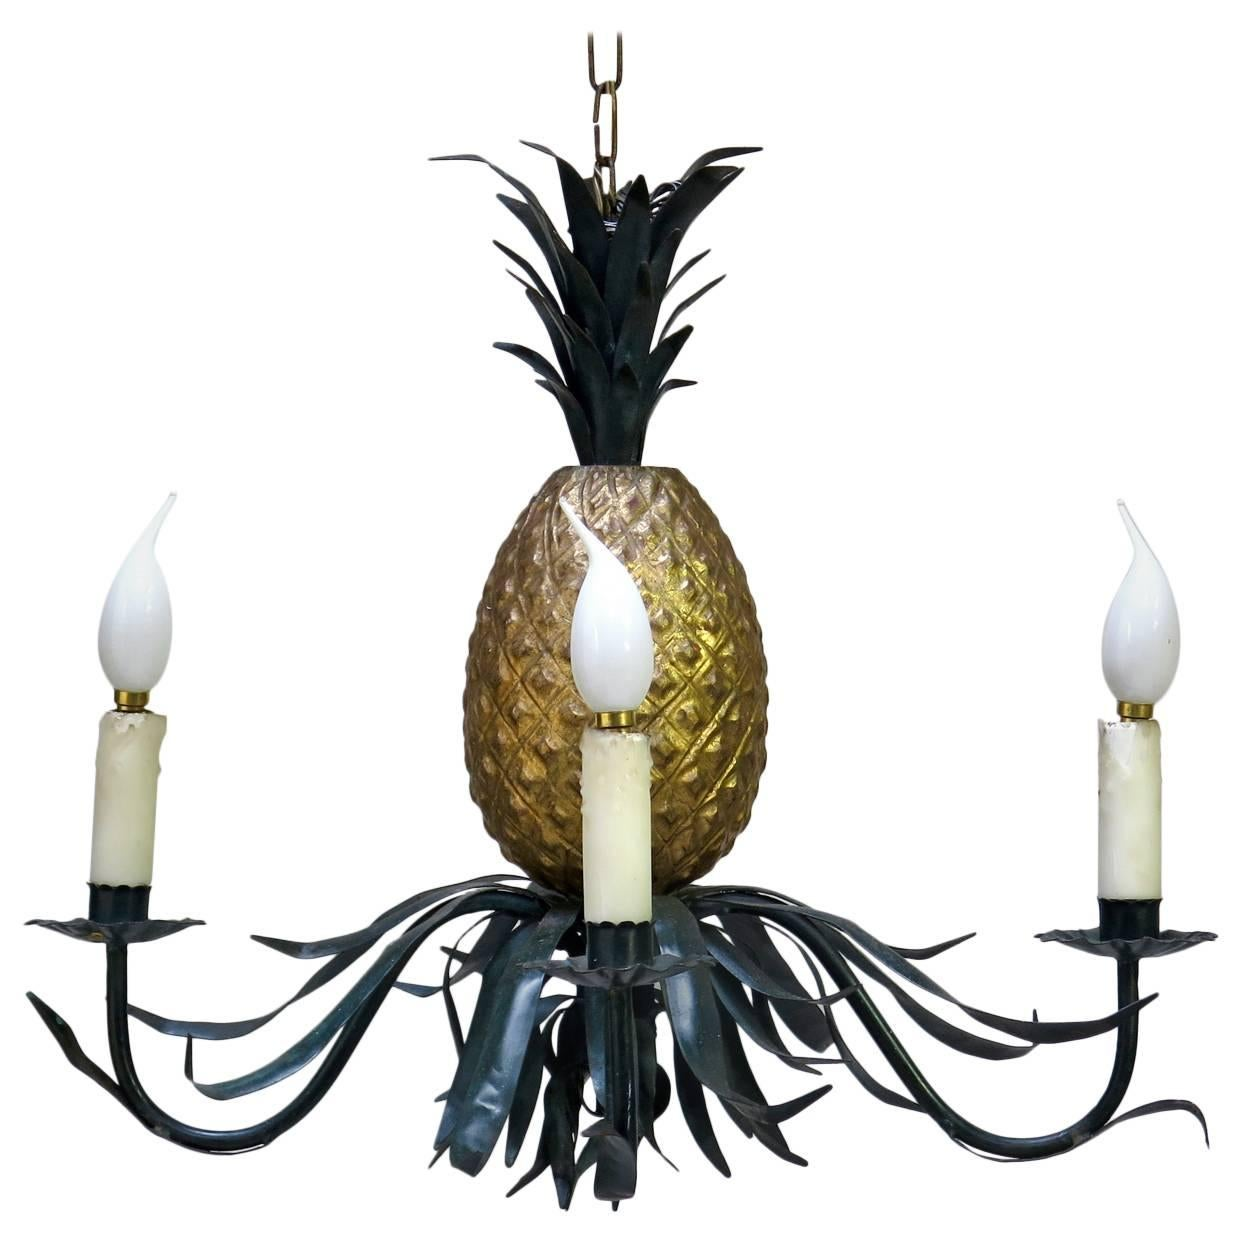 Painted Pineapple Chandelier, France, circa 1950s